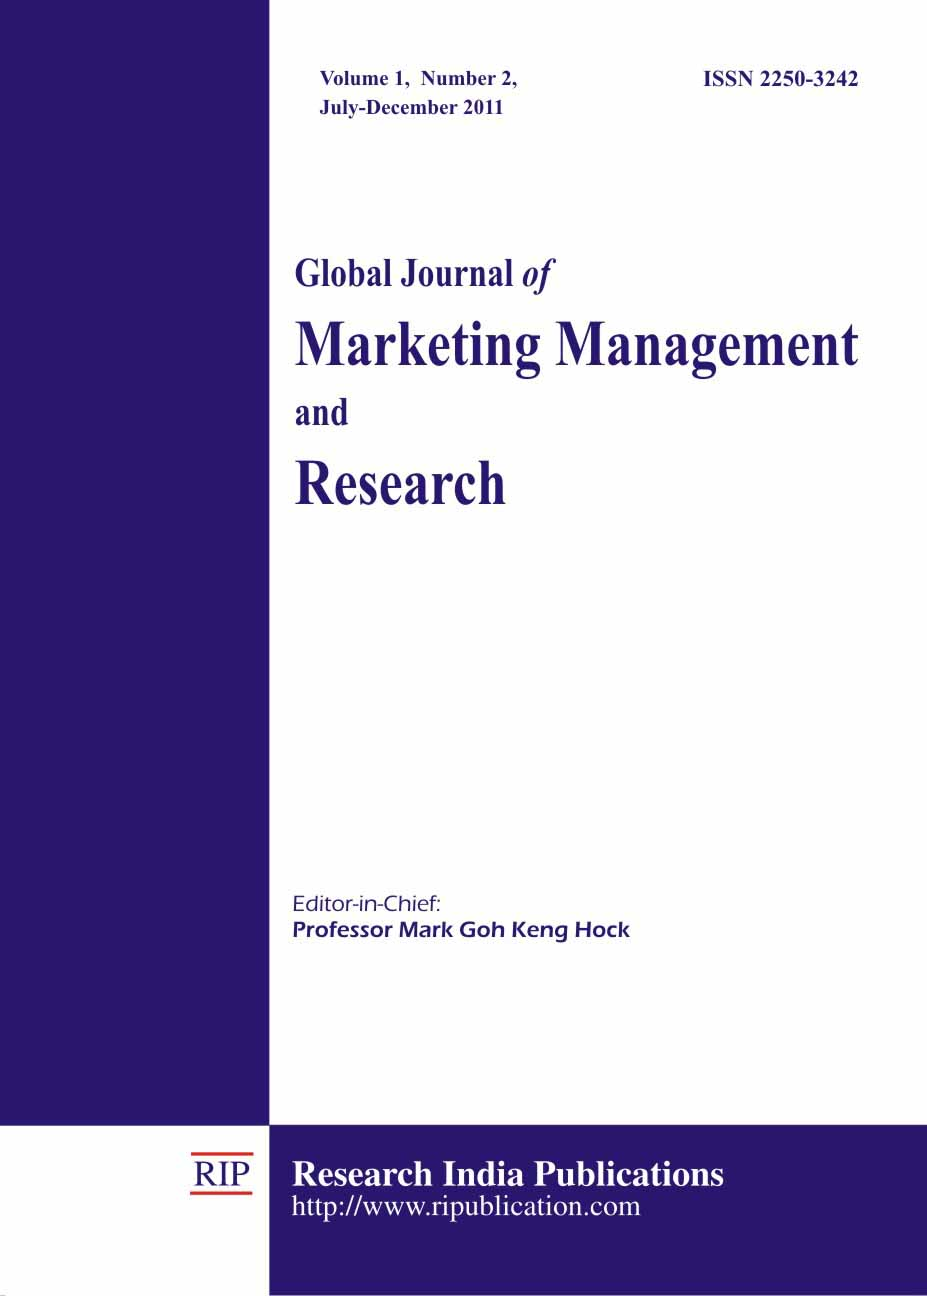 THE IMPACT OF MARKETING MIX ON CUSTOMER - arXiv